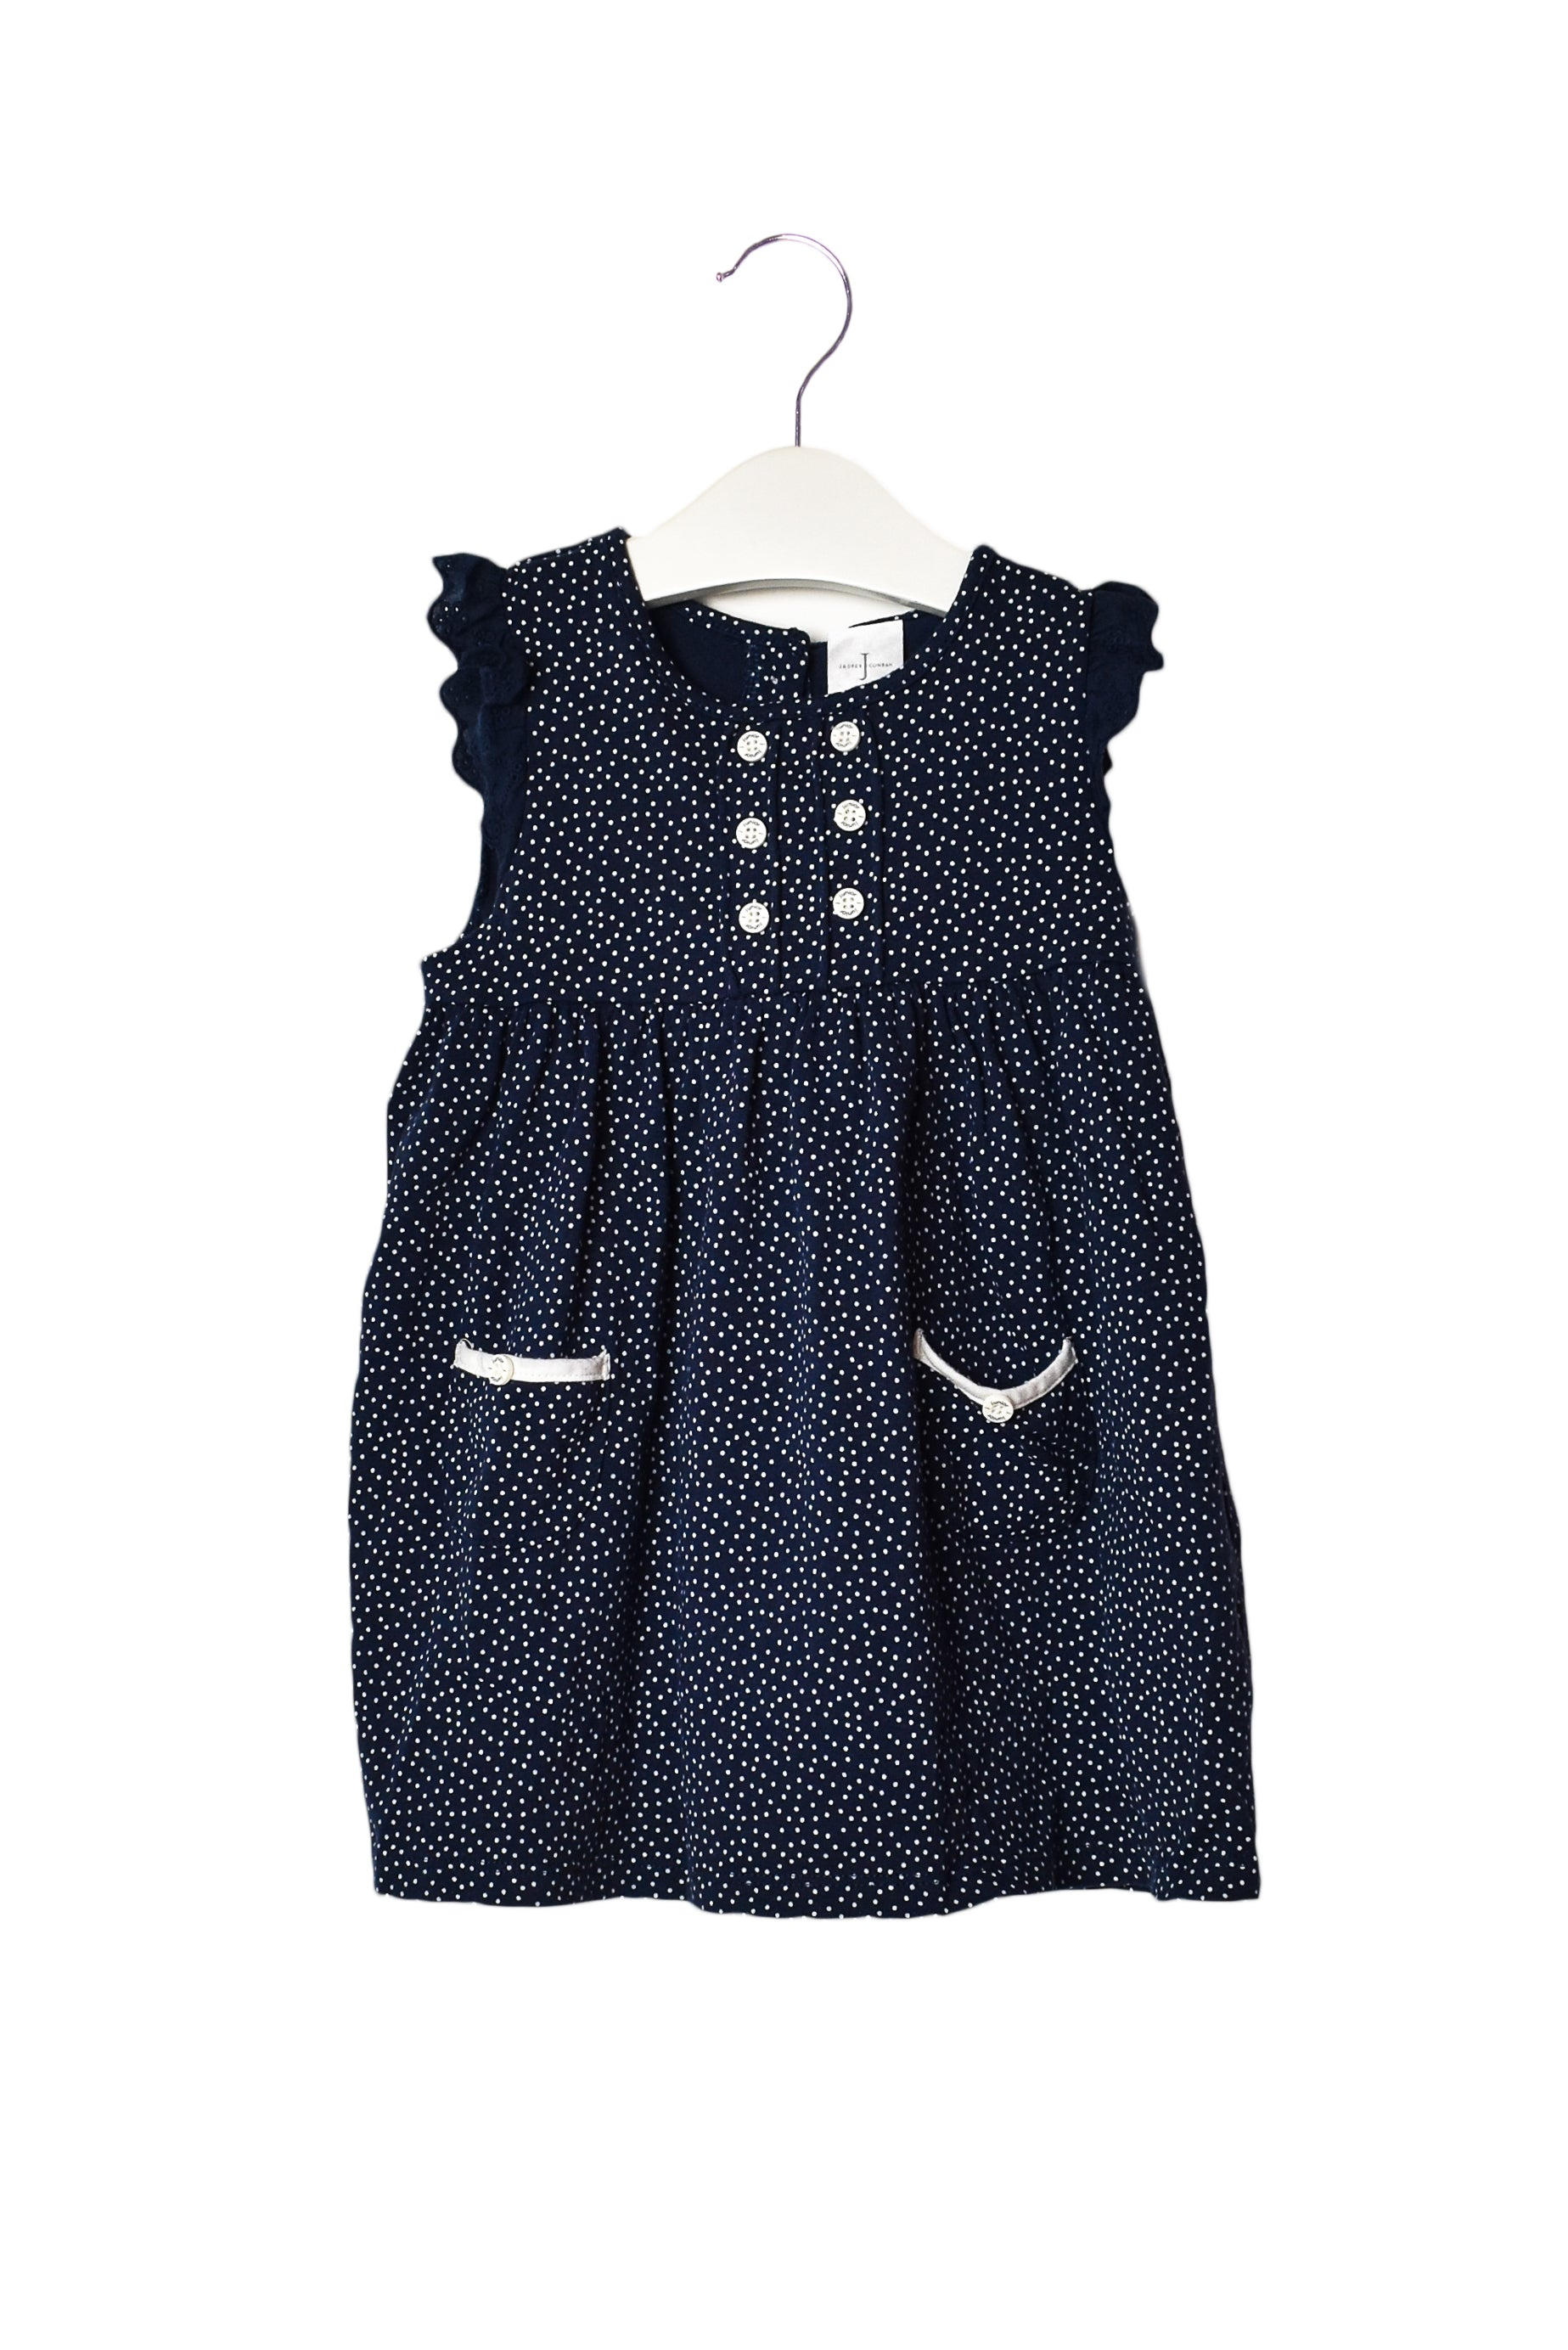 10007698 J by Jasper Conran Kids ~ Dress Jumpsuit Set 12-18M at Retykle